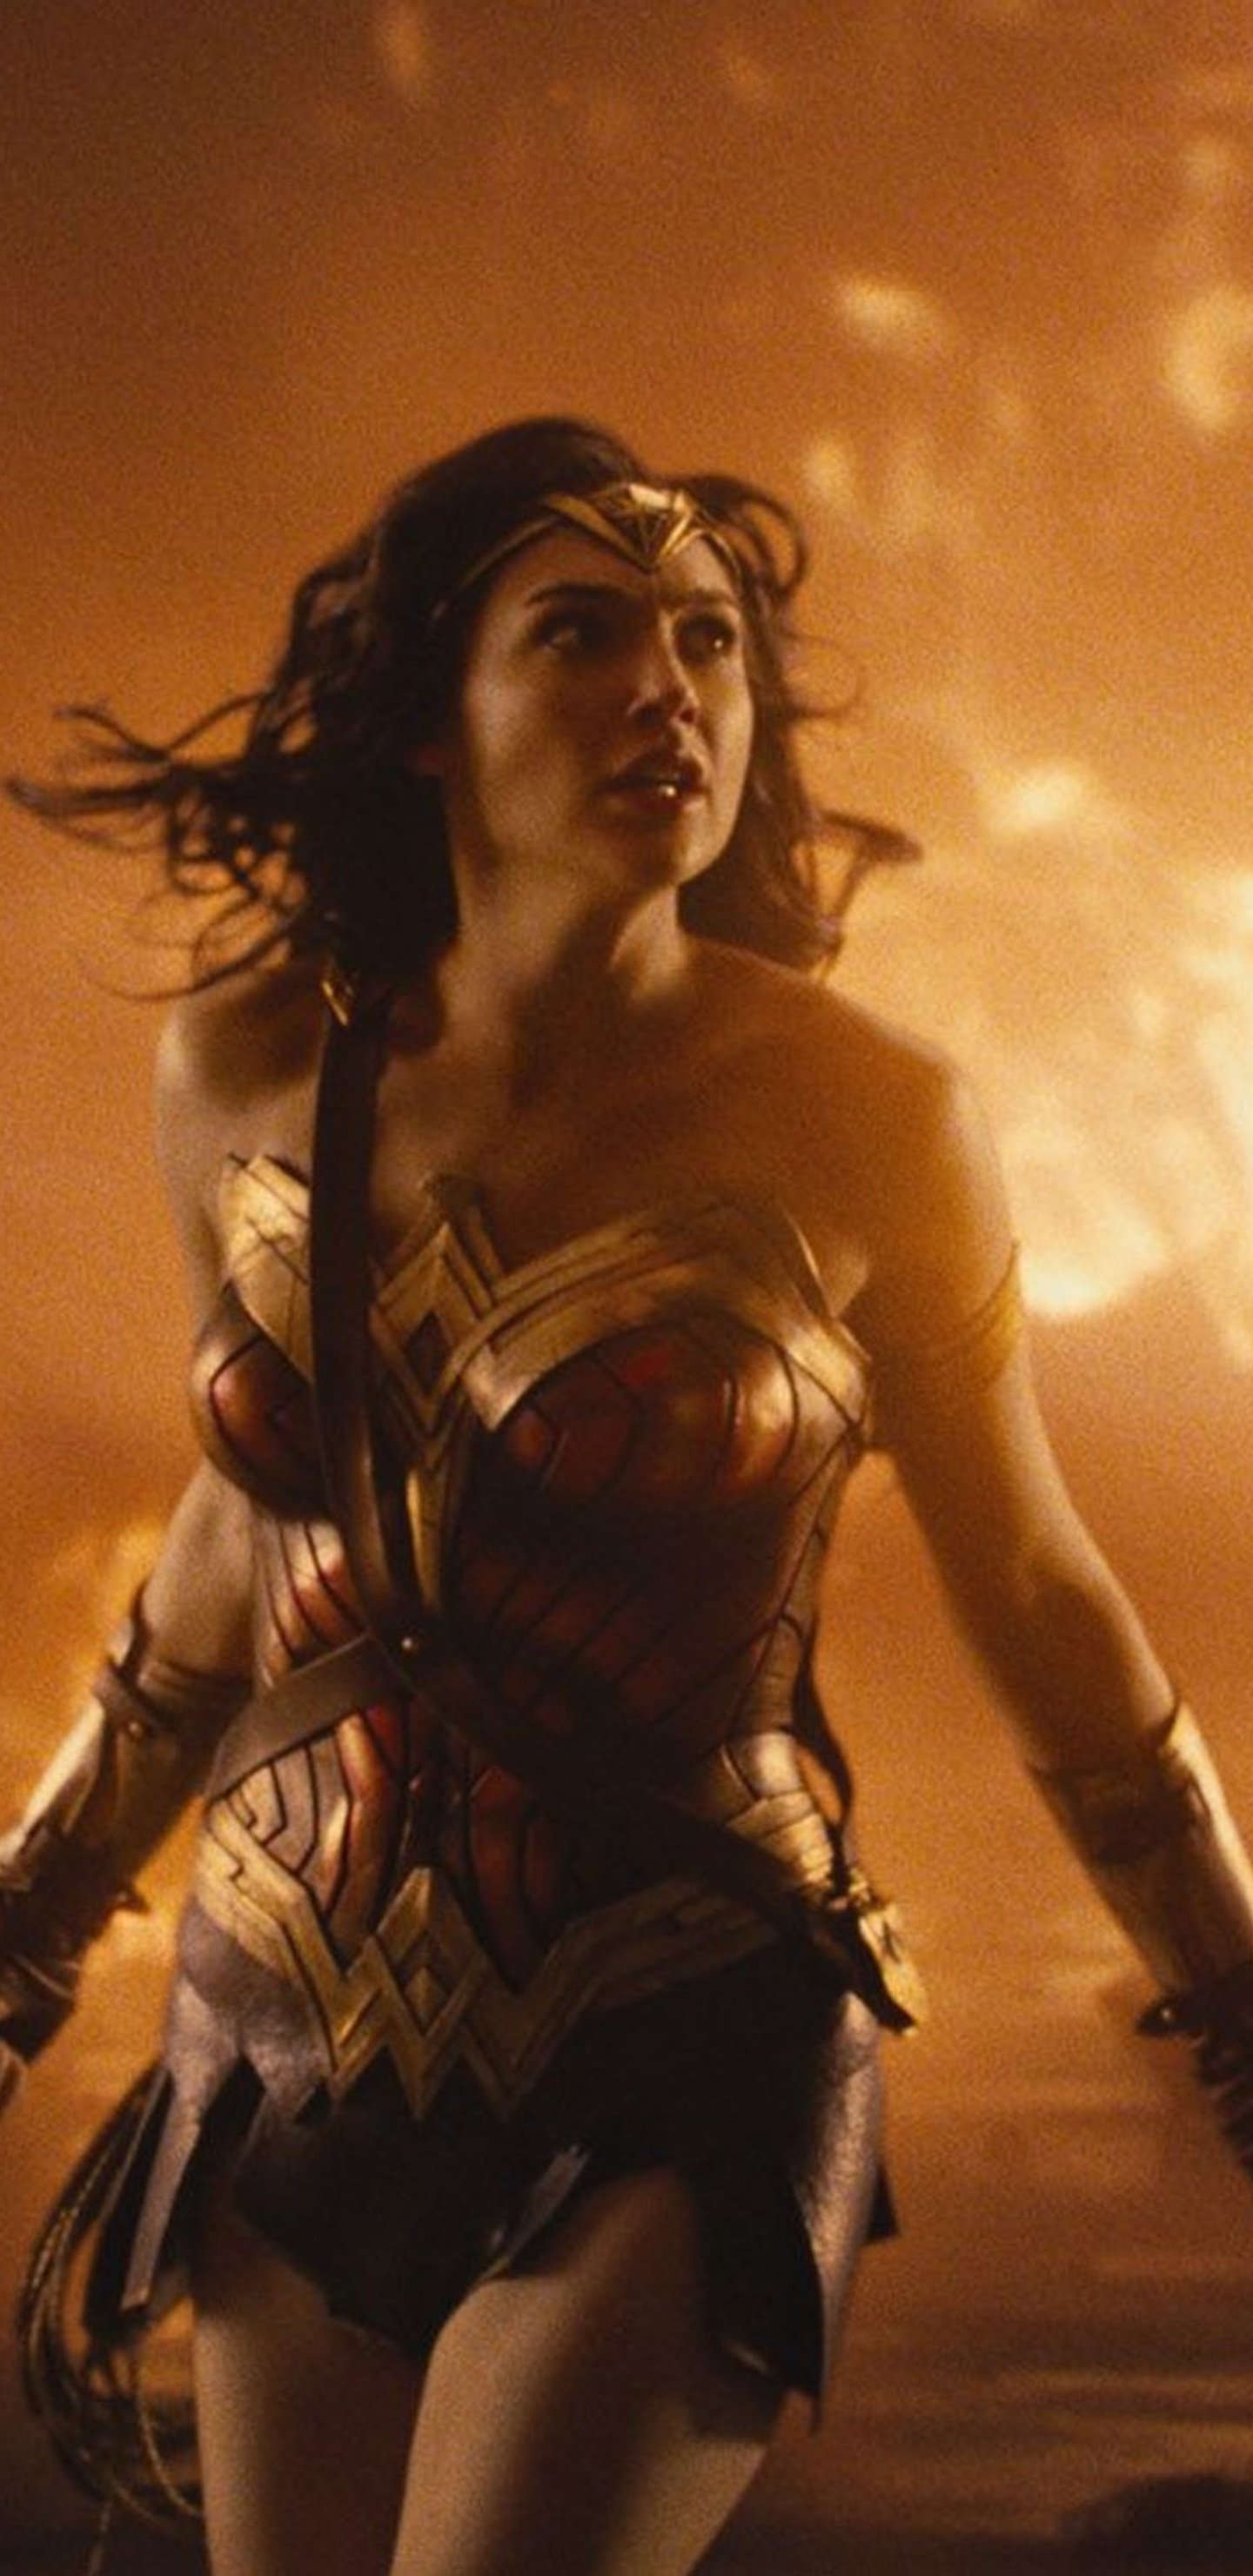 1440x2960 Wonder Woman Surronded By Fire Samsung Galaxy Note 9 8